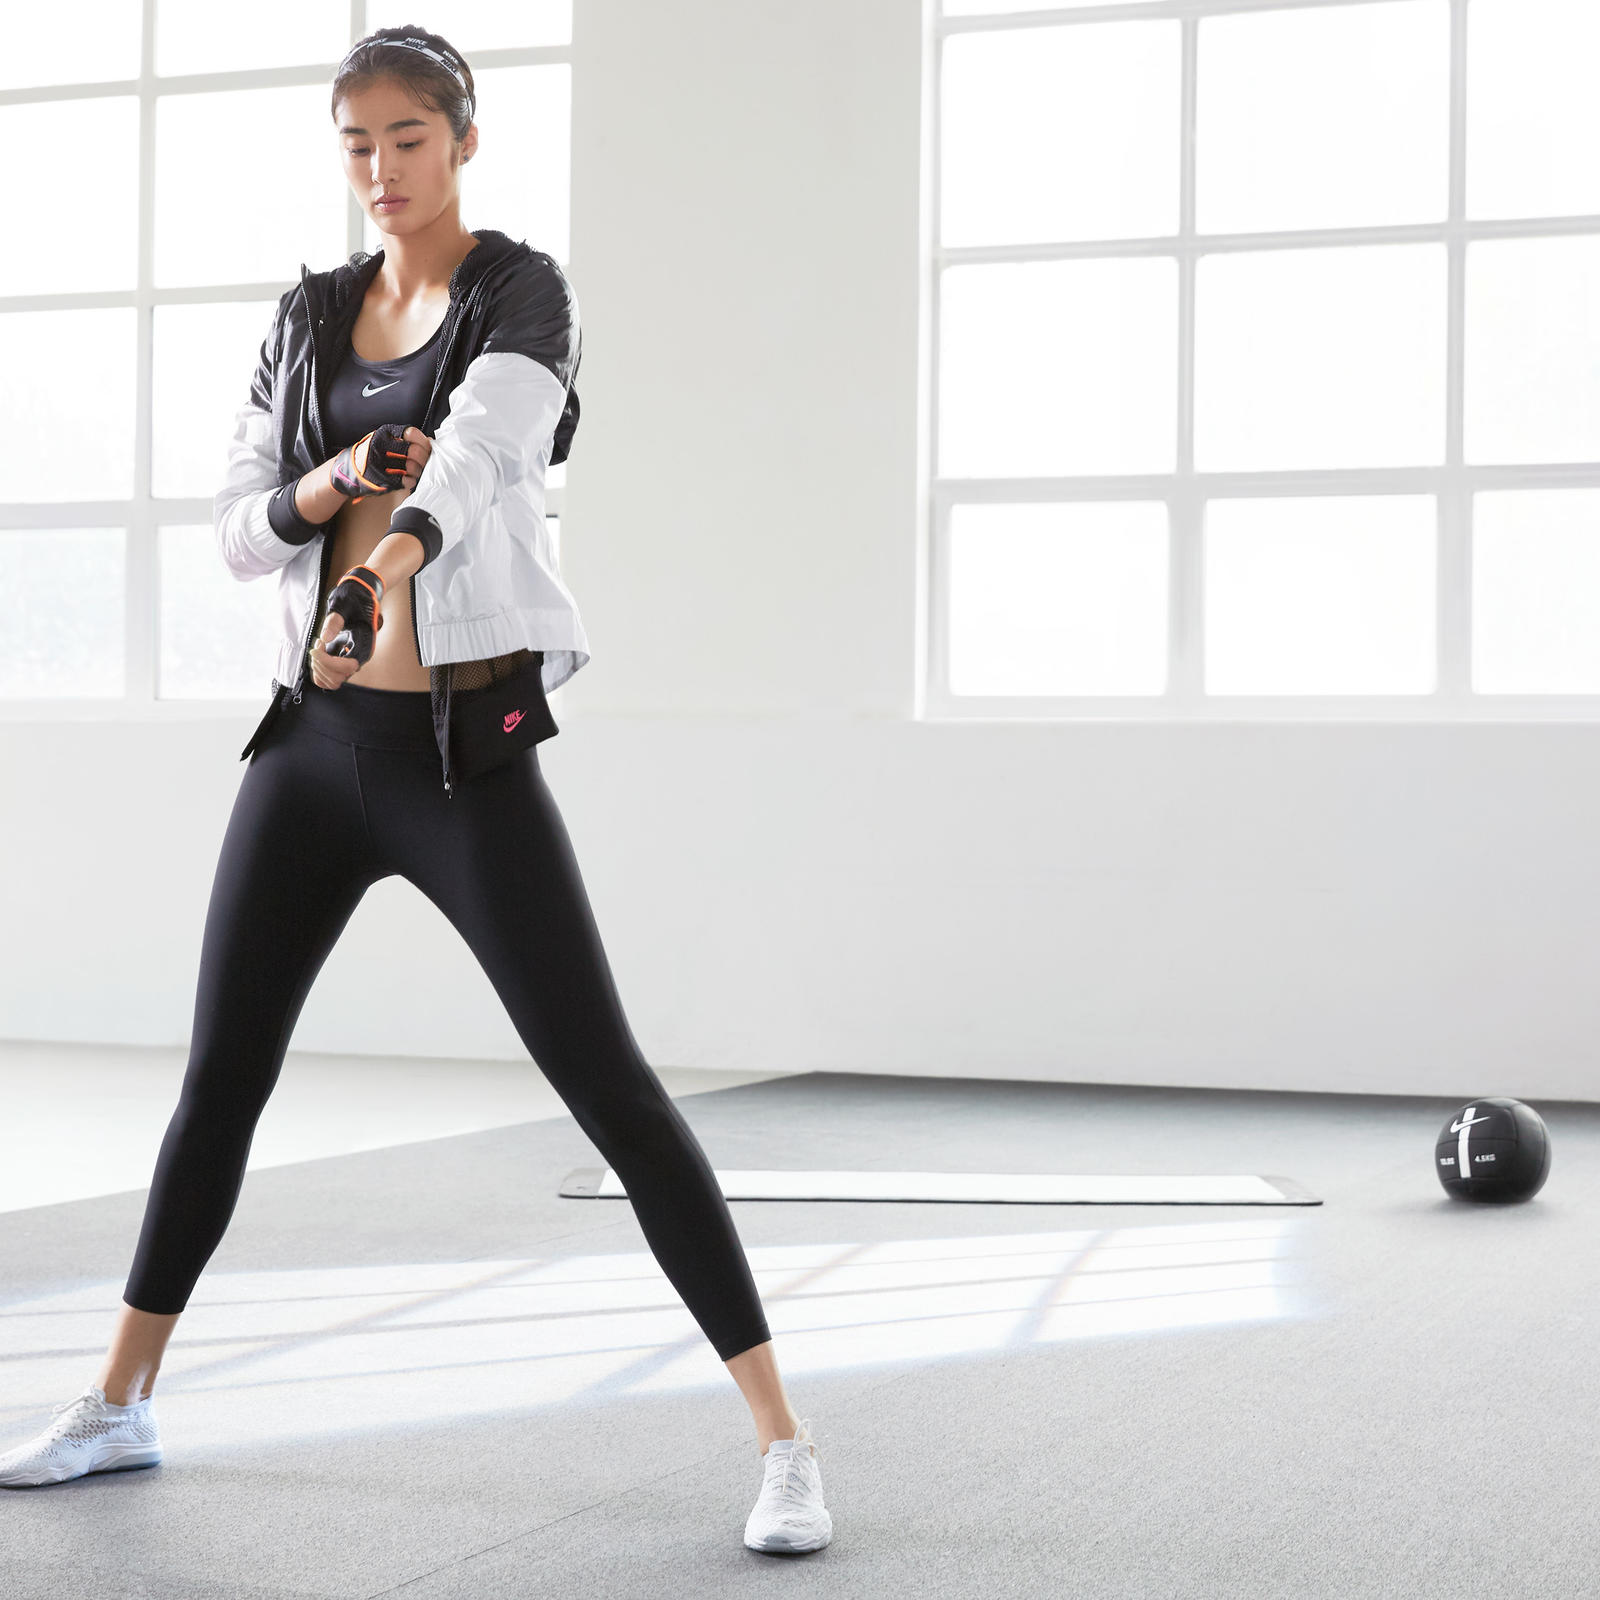 Nike Partners with Chinese Tennis Star Li Na to Introduce Signature Line 14